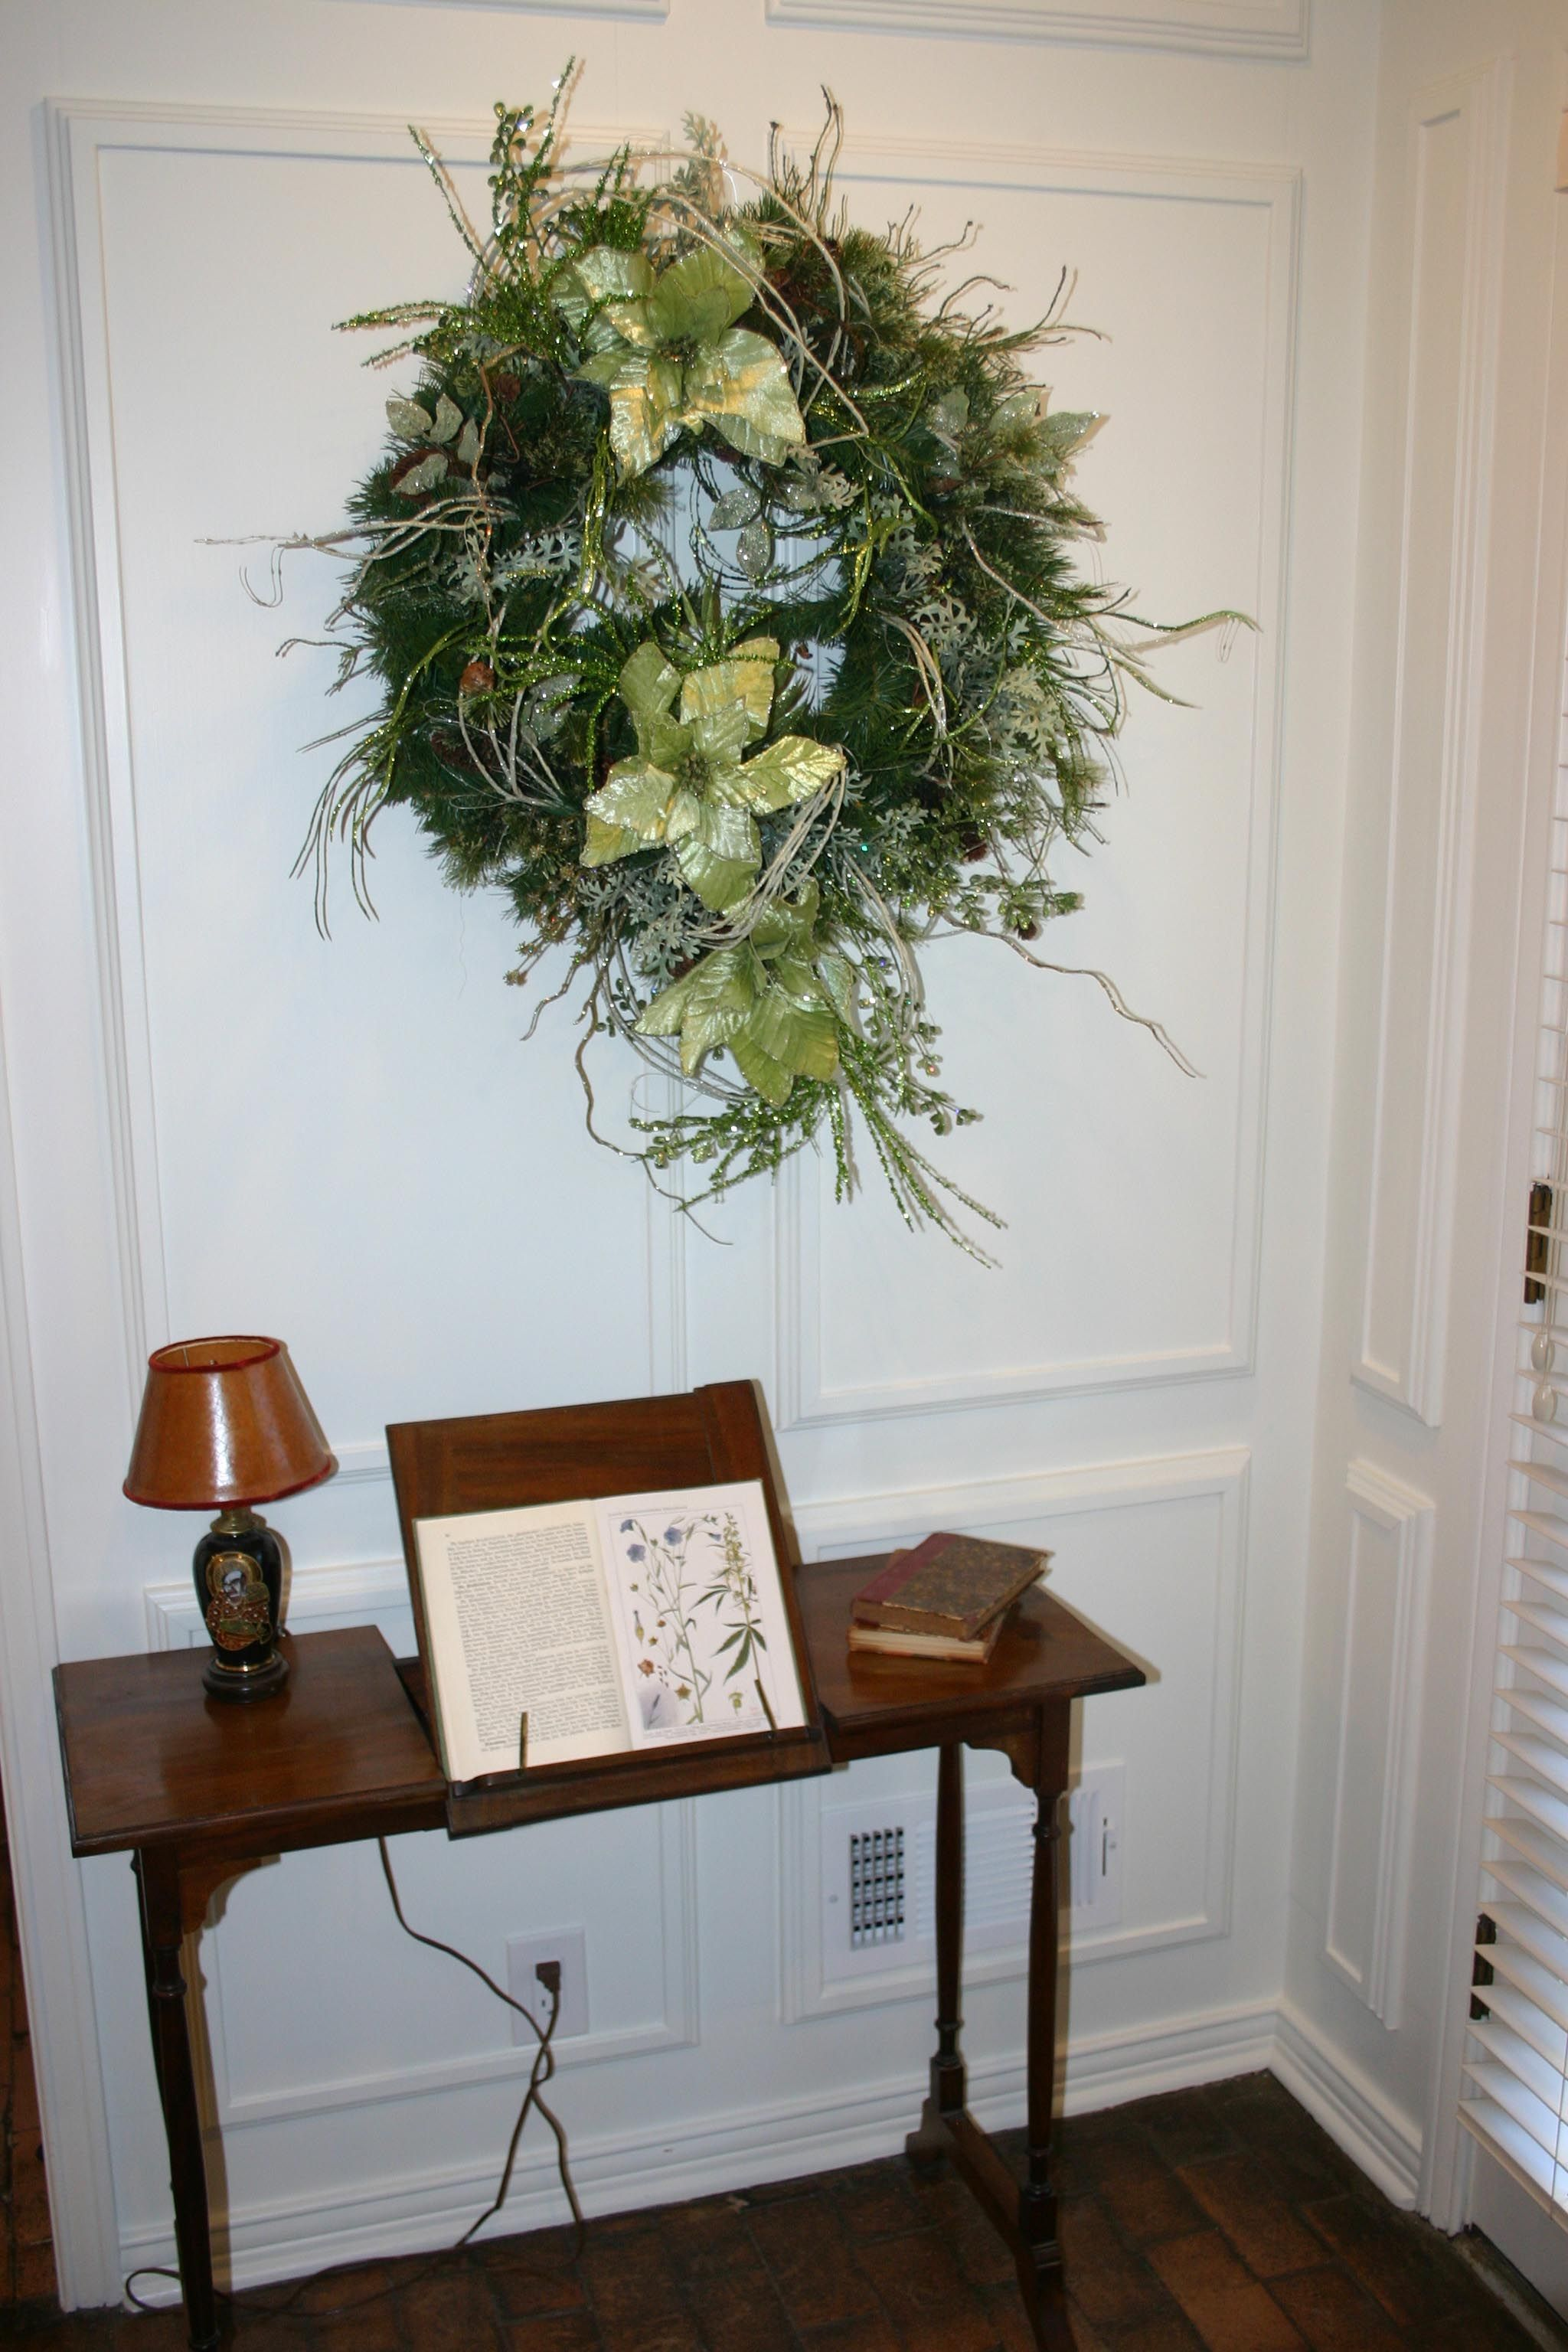 A Wreath With Tail Greens And Silver Lots Of Additions Under It Is My Favorite Small Reading Table Holding An Open Antique Book Botanical